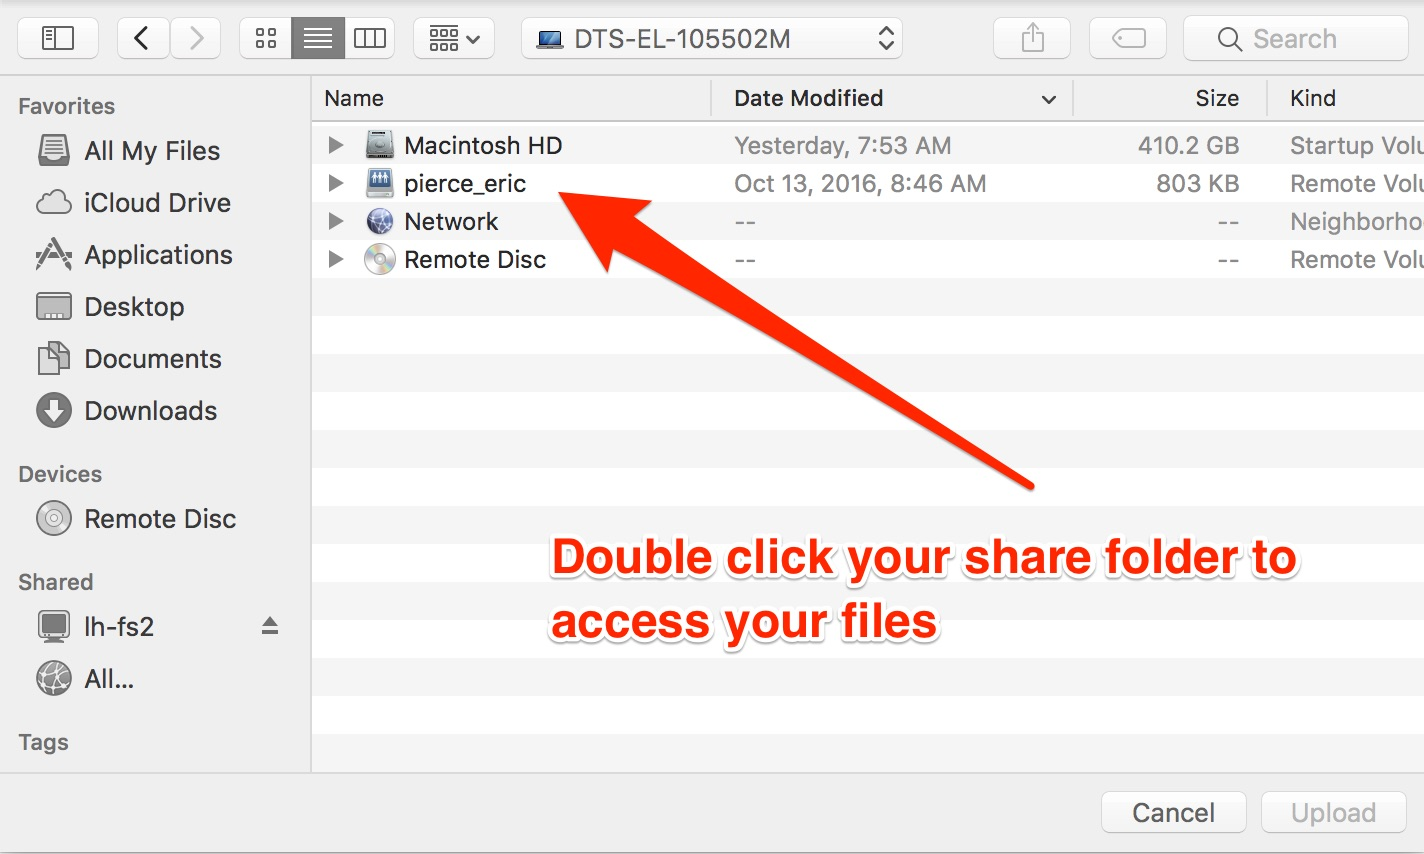 Double click your share to access files